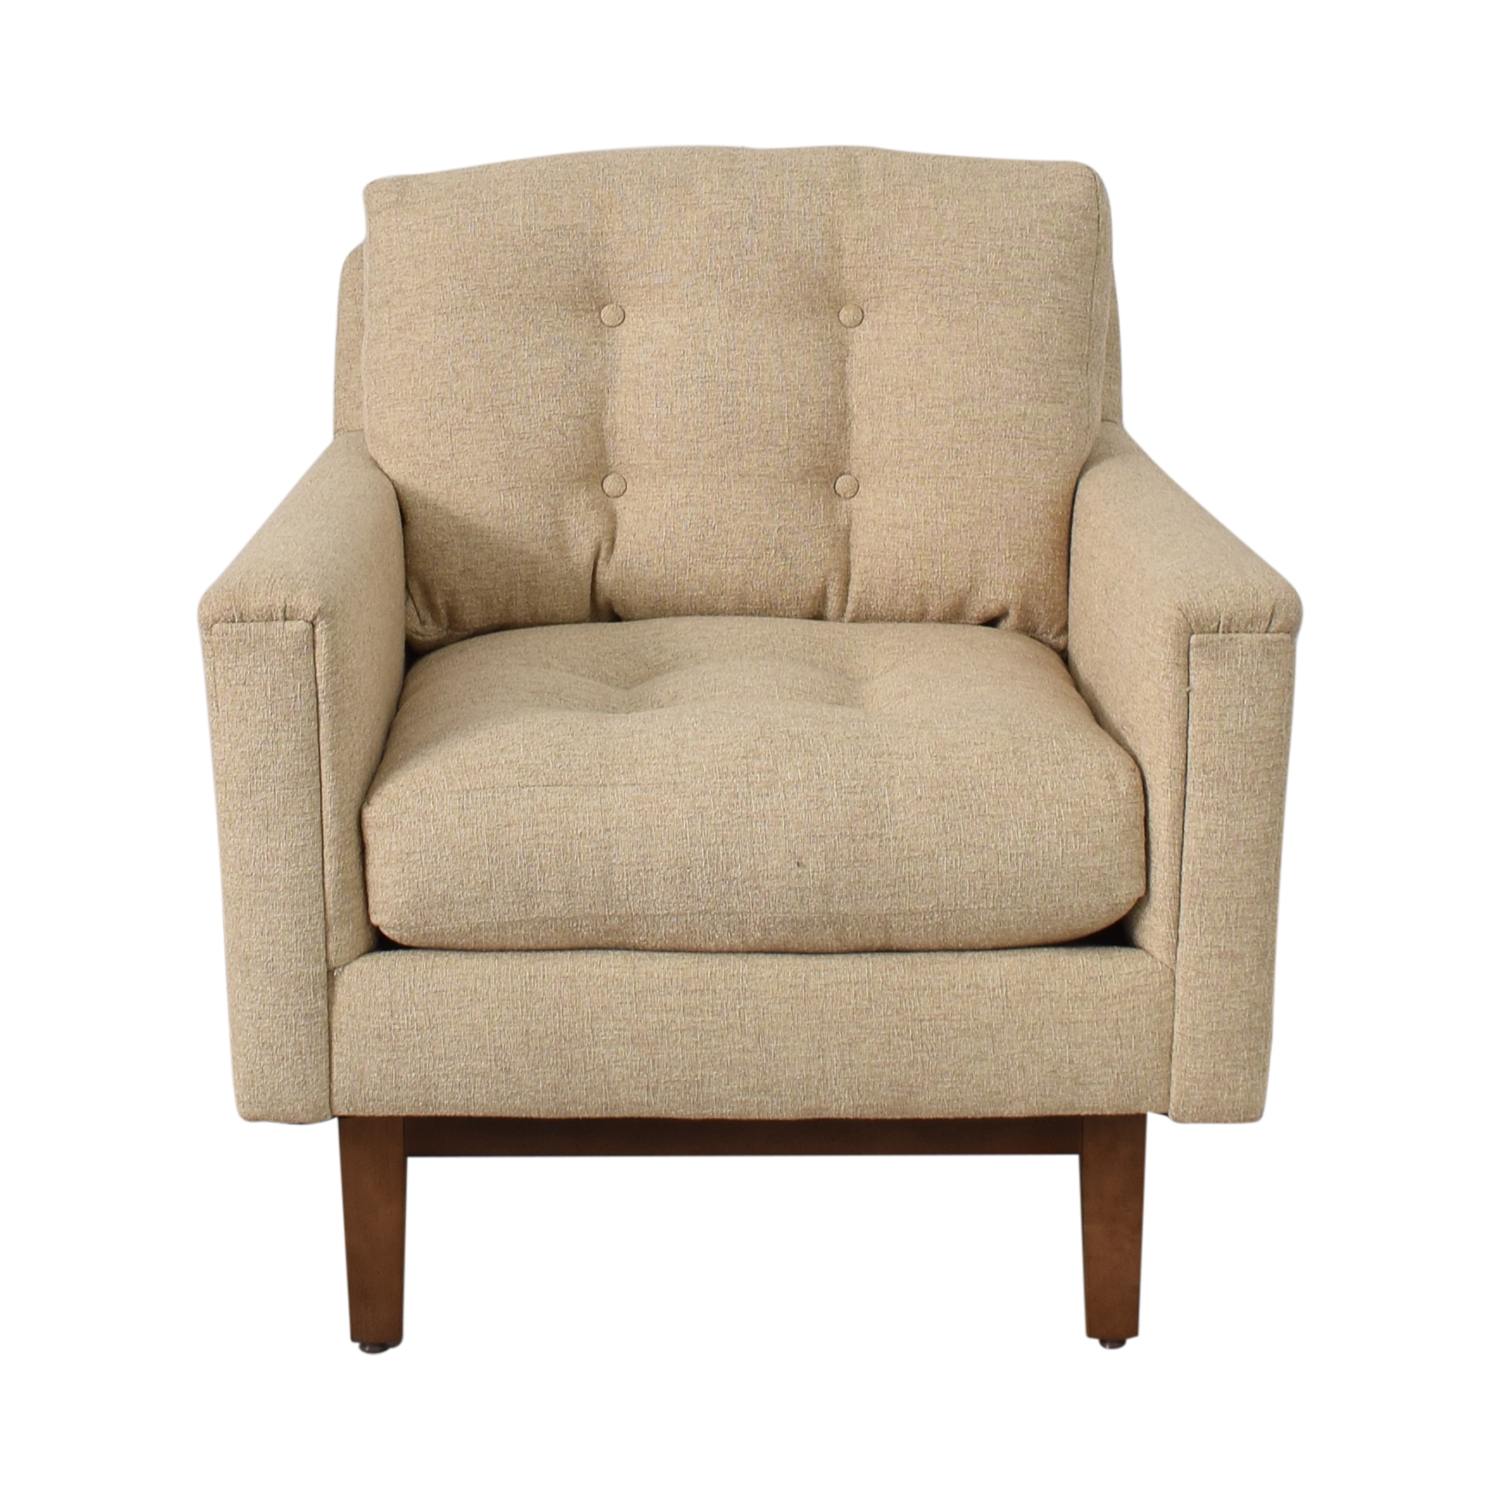 Rowe Furniture Rowe Furniture Ethan Beige Tufted Accent Armchair nj